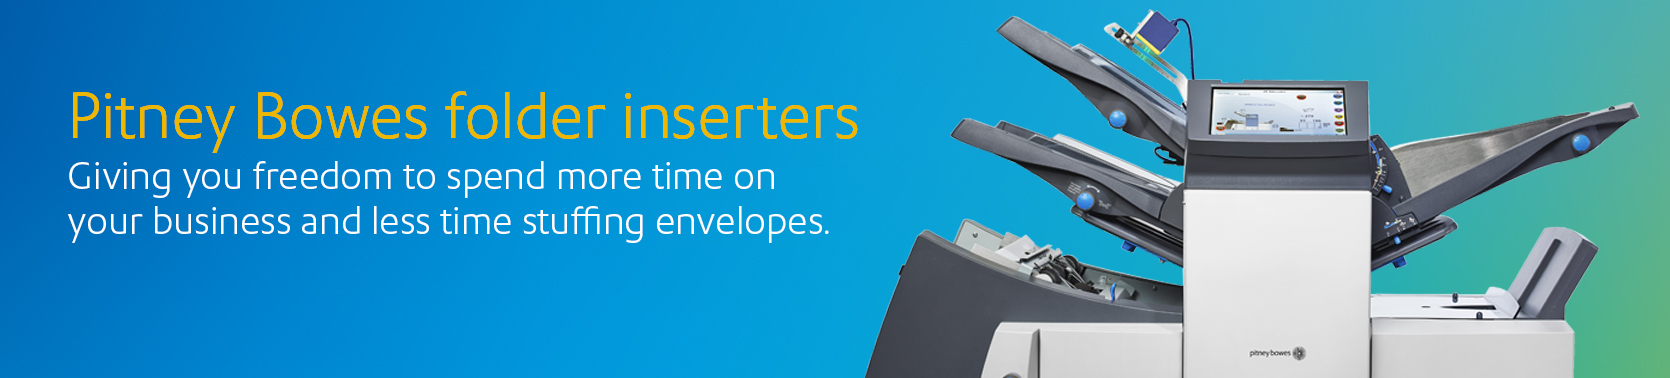 Pitney Bowes Folders Inserters. Giving you the freedom to spend more time on your business and less time stuffing envelopes.